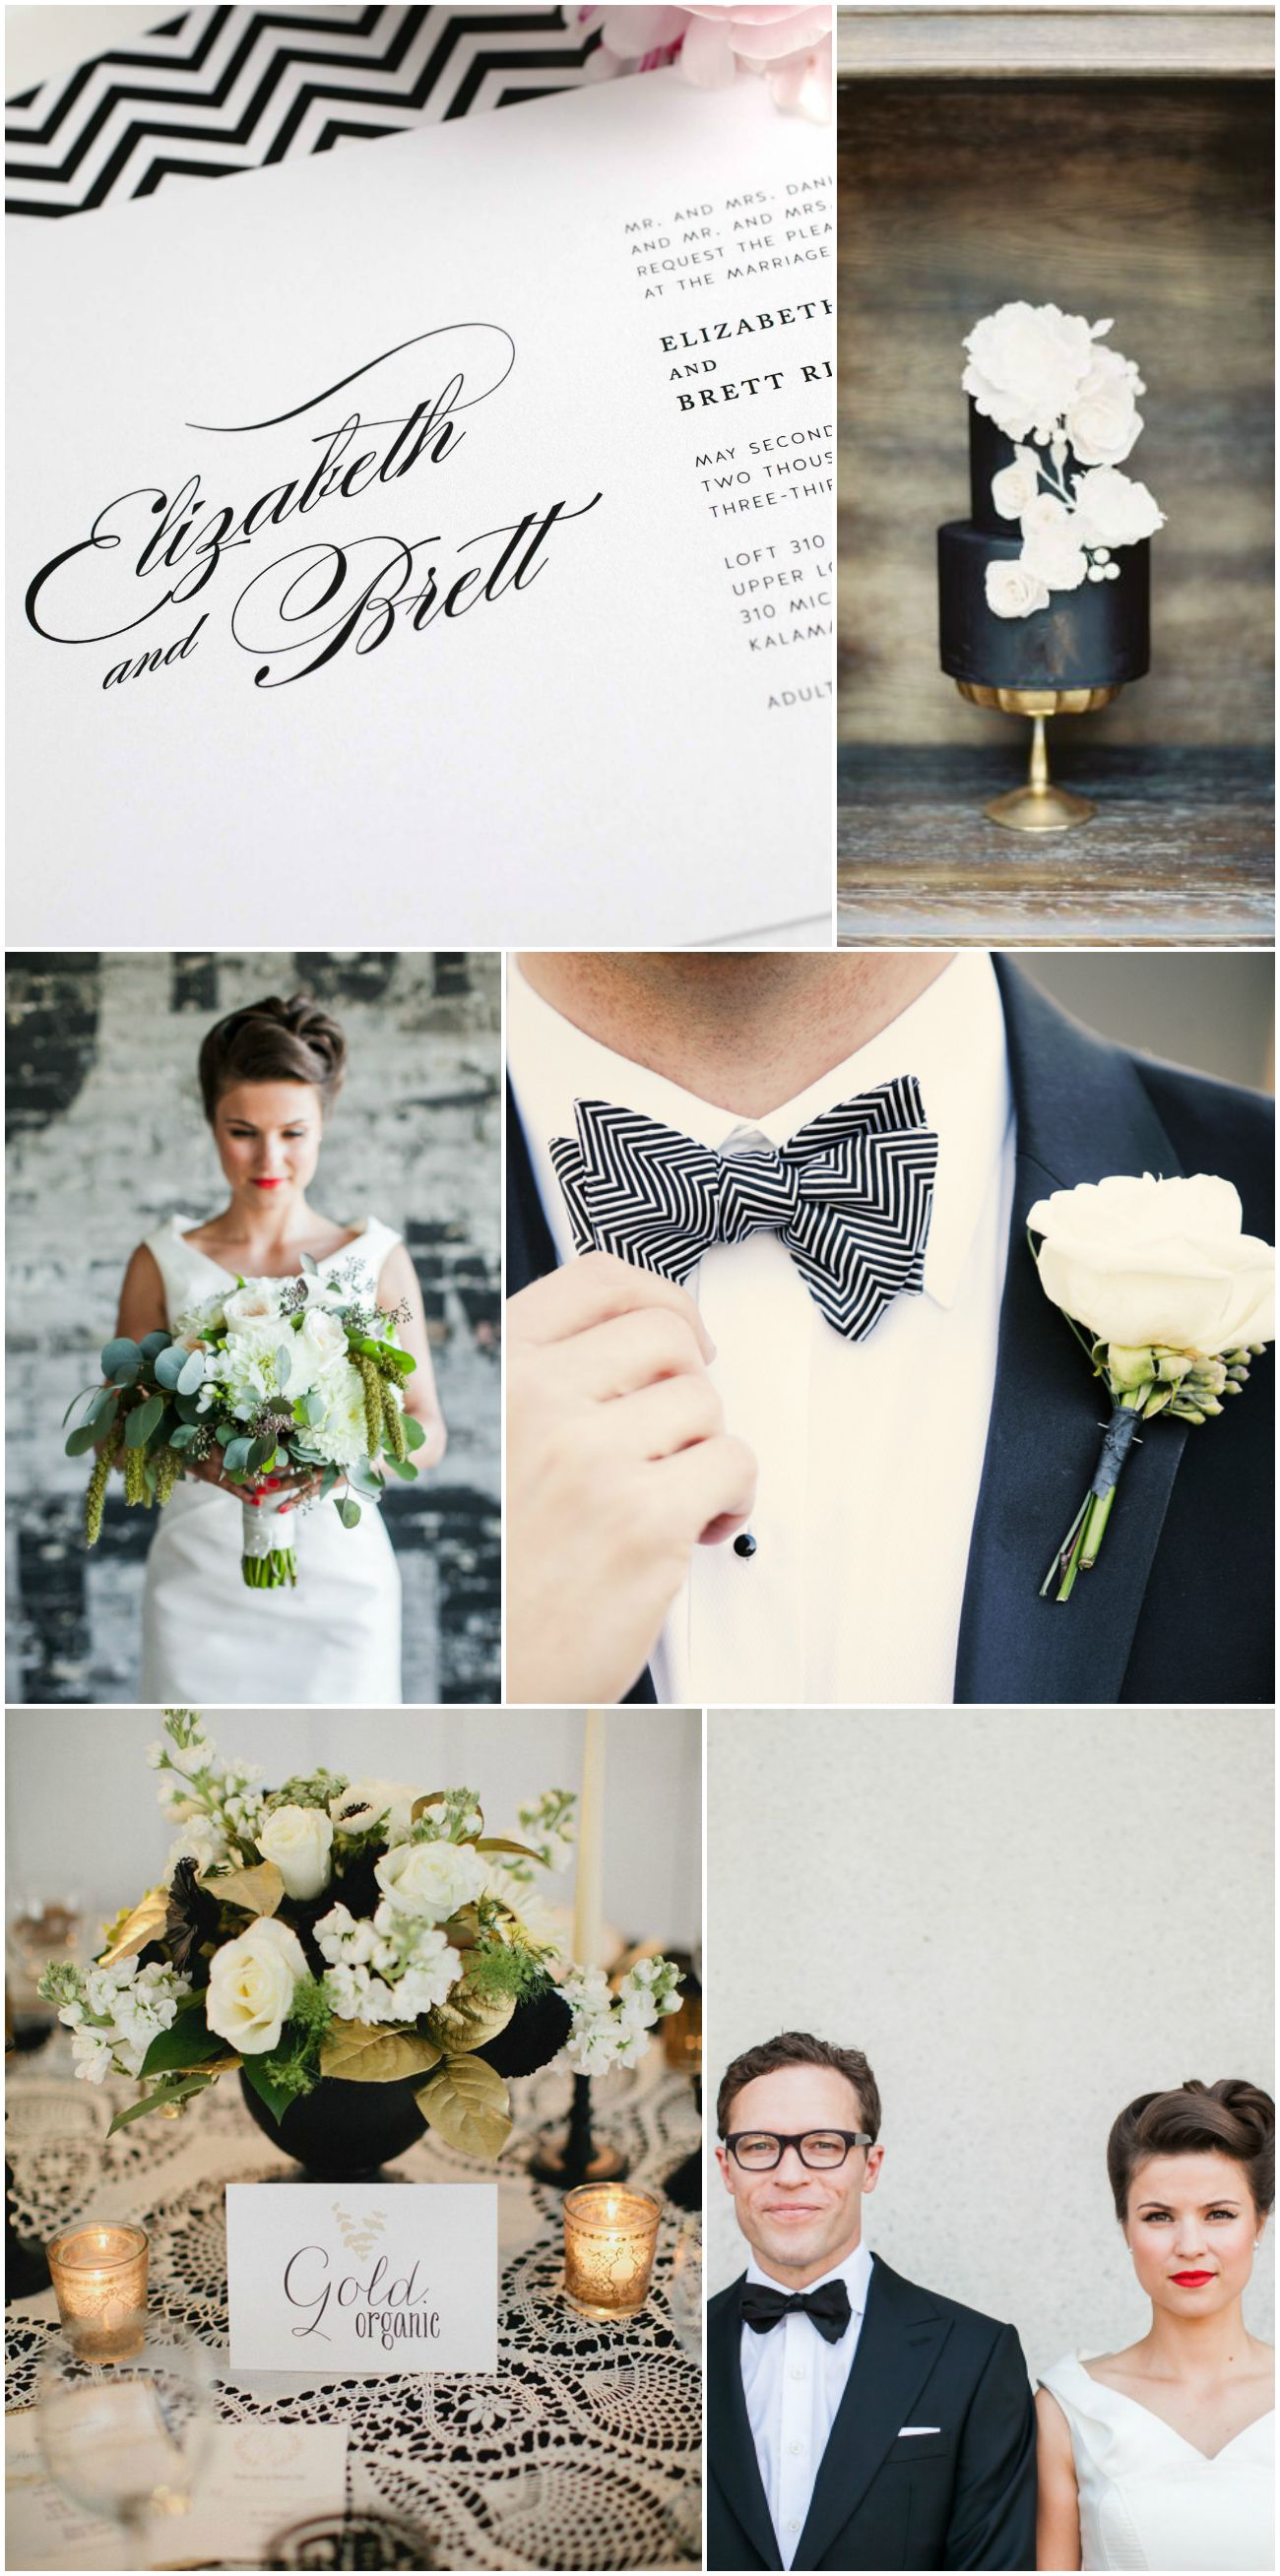 1940s glam black and white wedding inspiration